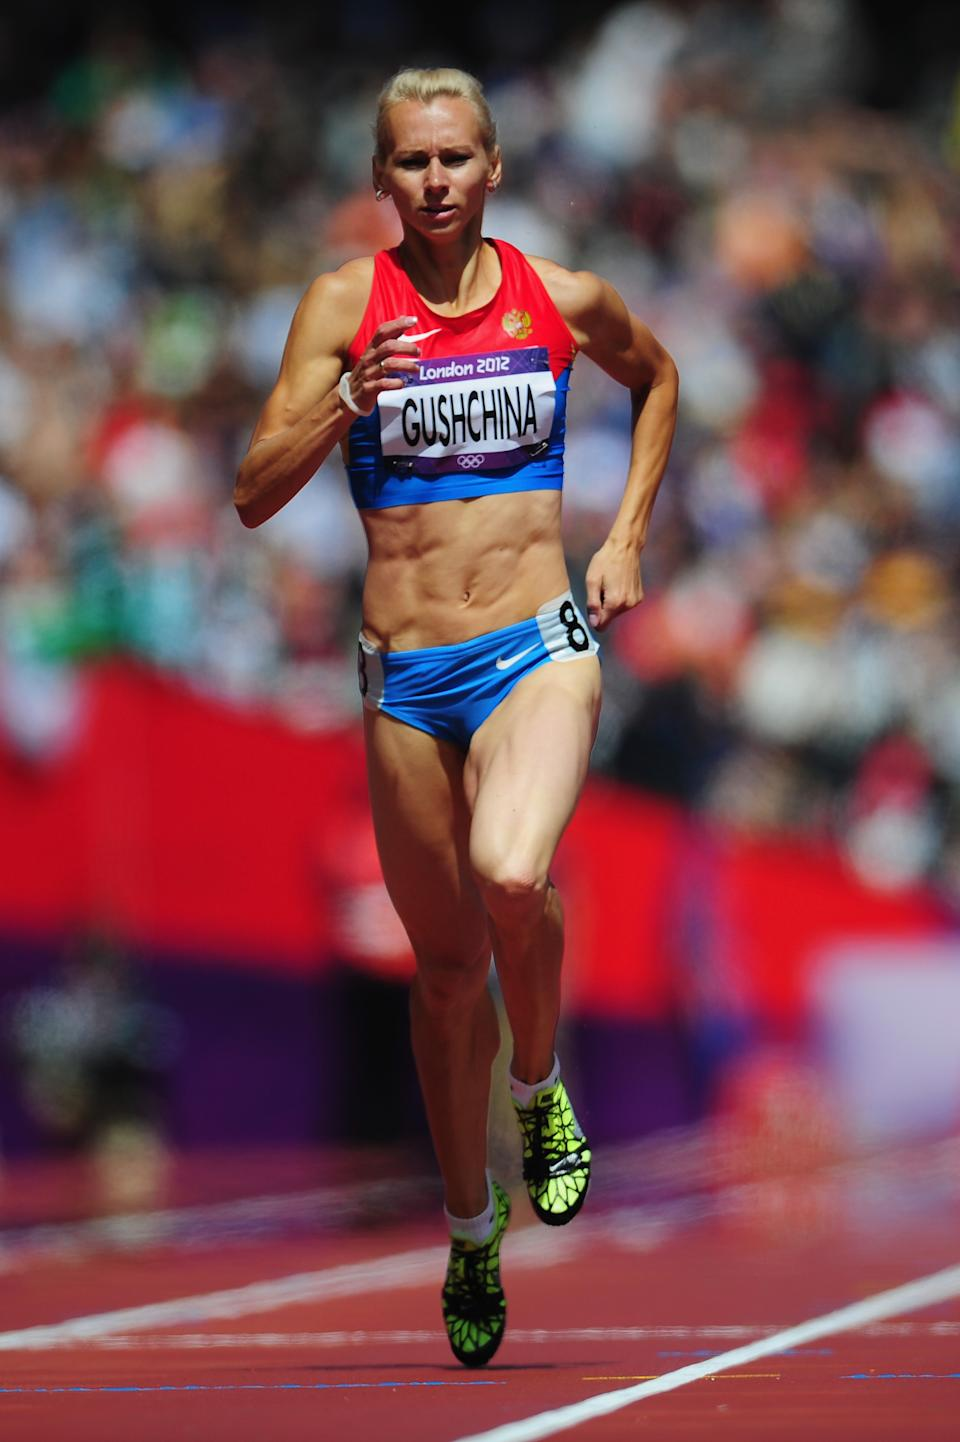 LONDON, ENGLAND - AUGUST 03: Yulia Gushchina of Russia competes in the Women's 400m Heats on Day 7 of the London 2012 Olympic Games at Olympic Stadium on August 3, 2012 in London, England. (Photo by Stu Forster/Getty Images)